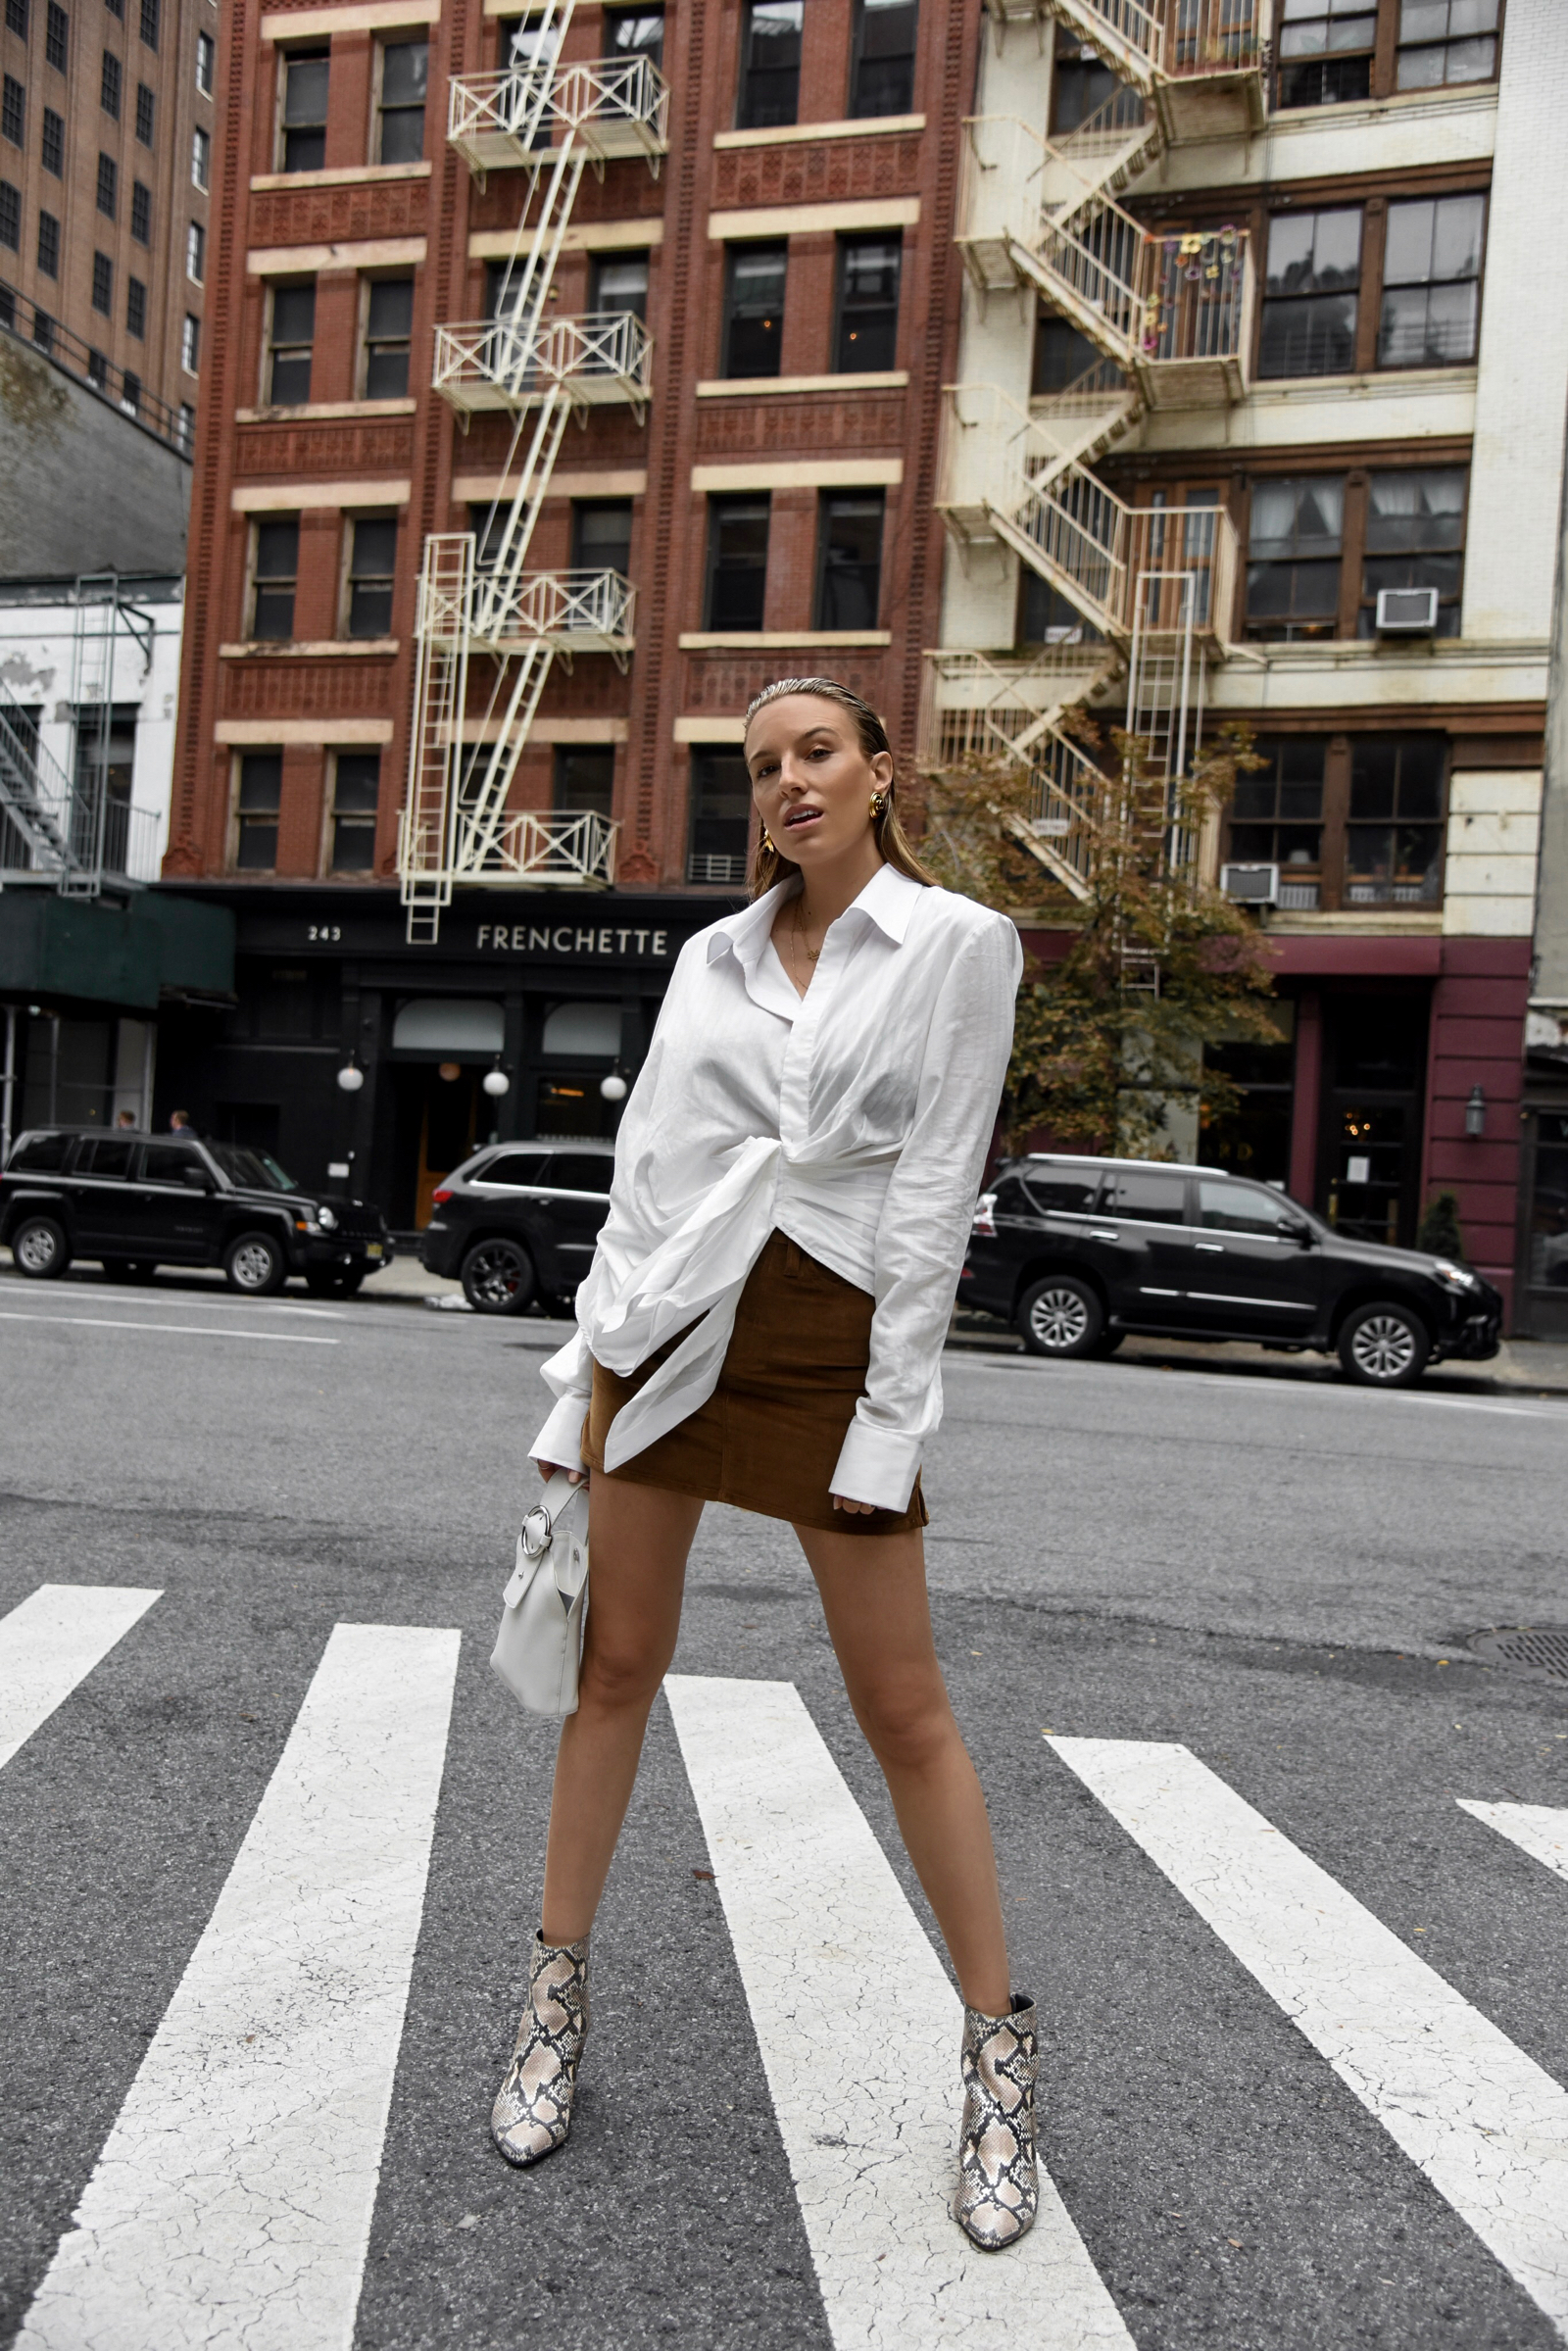 Fall Trends in Jacquemus & Snake Skin Boots